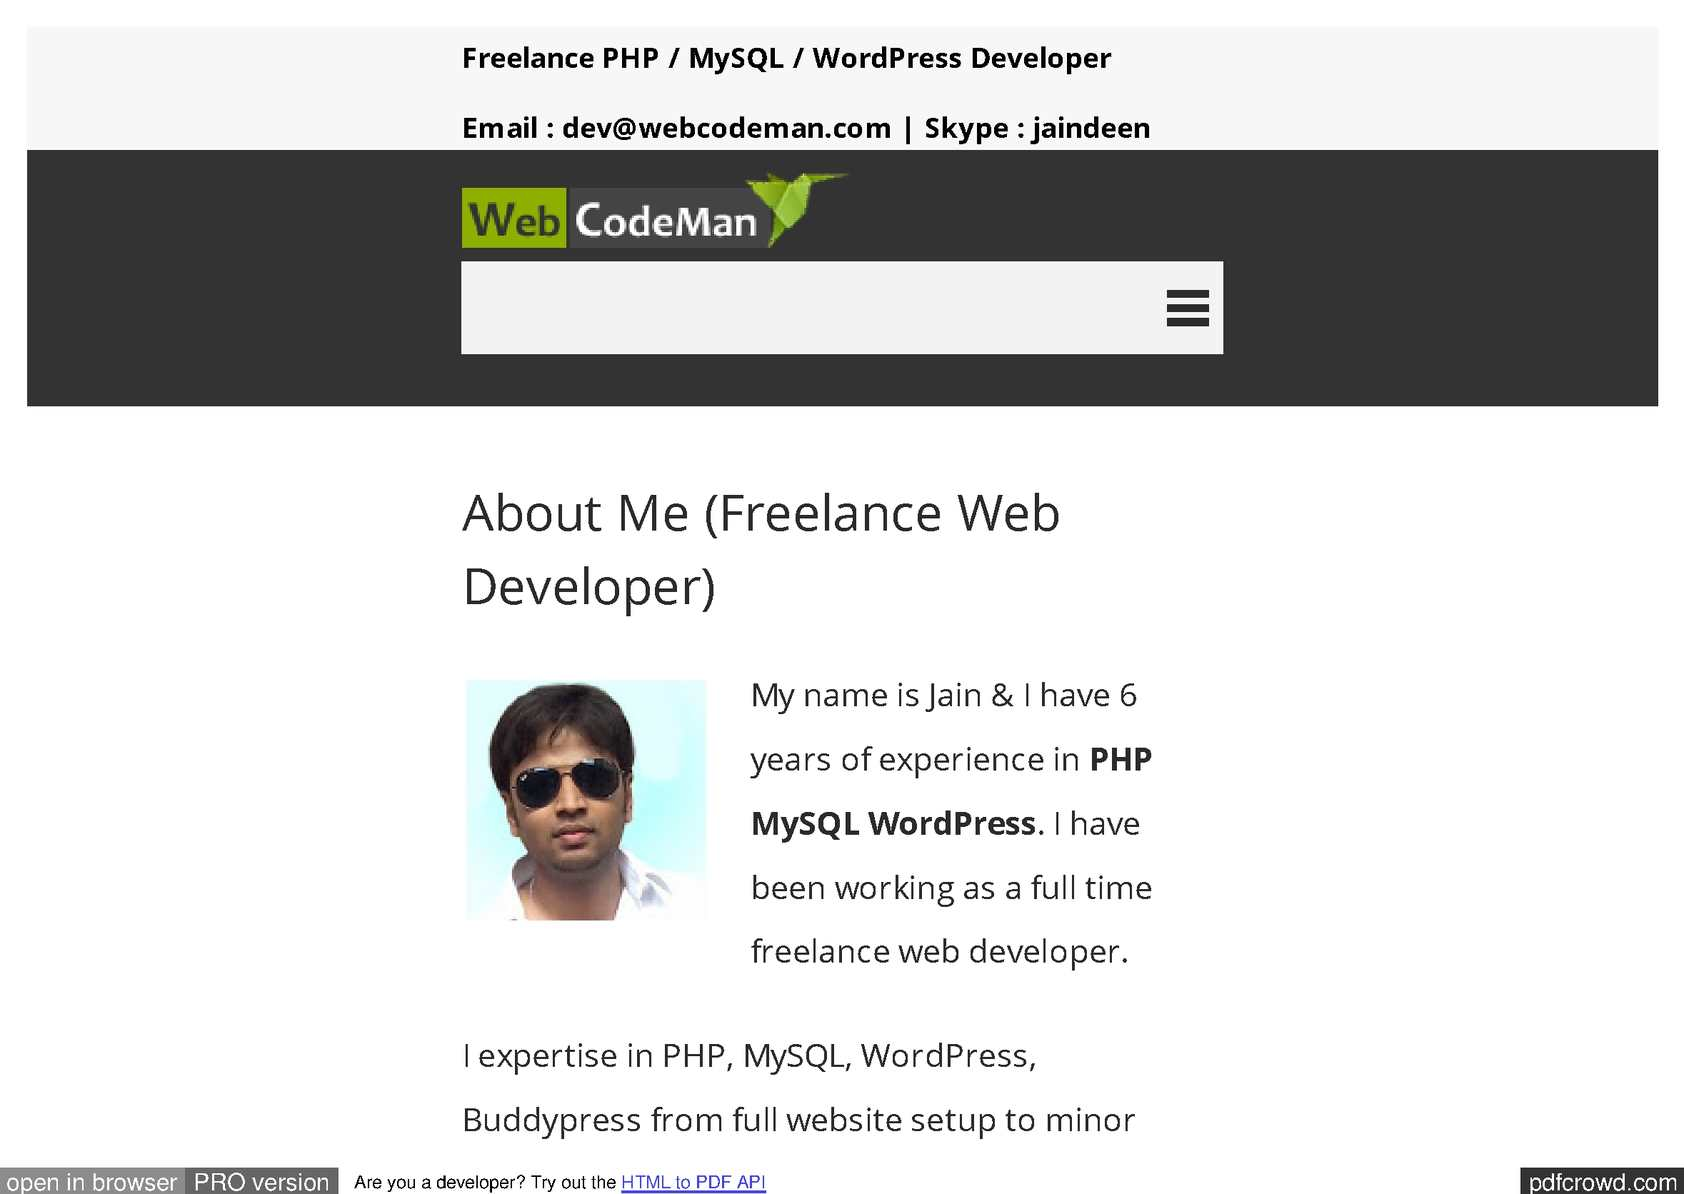 Calaméo - freelance web developer